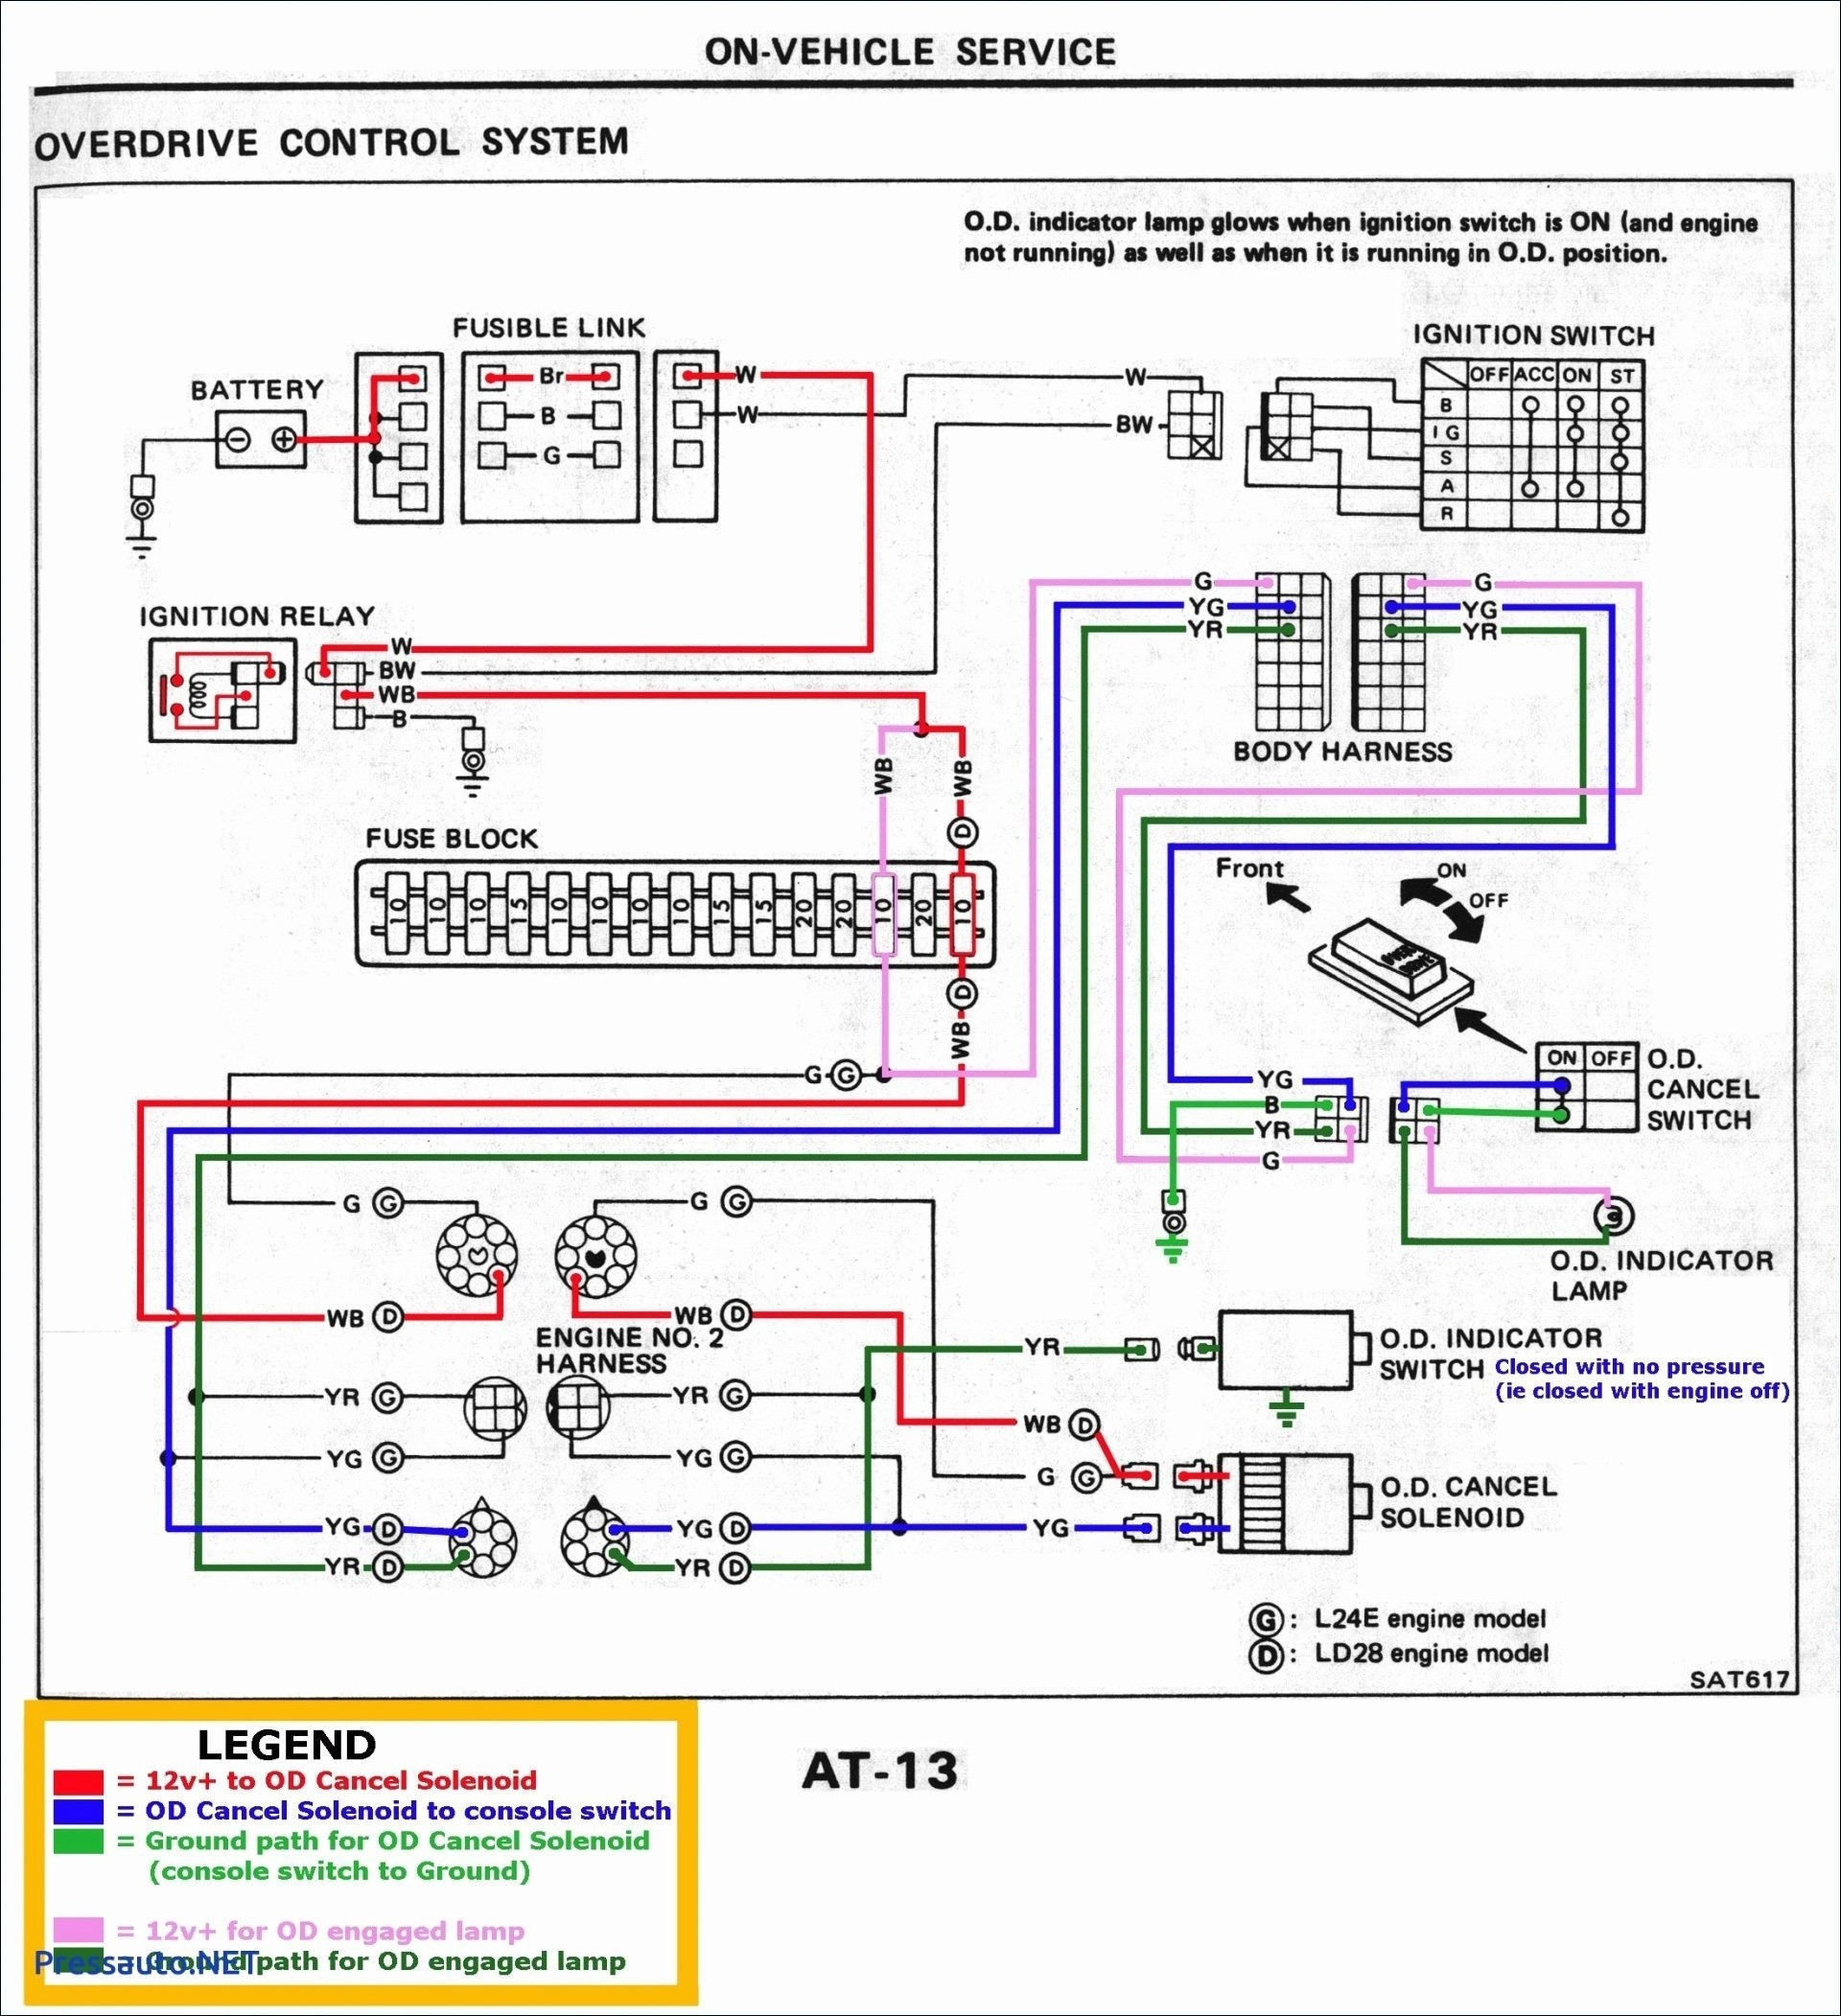 dodge ram 1500 fuel system diagram diagram  1995 dodge ram 1500 trailer wiring diagram full version  1995 dodge ram 1500 trailer wiring